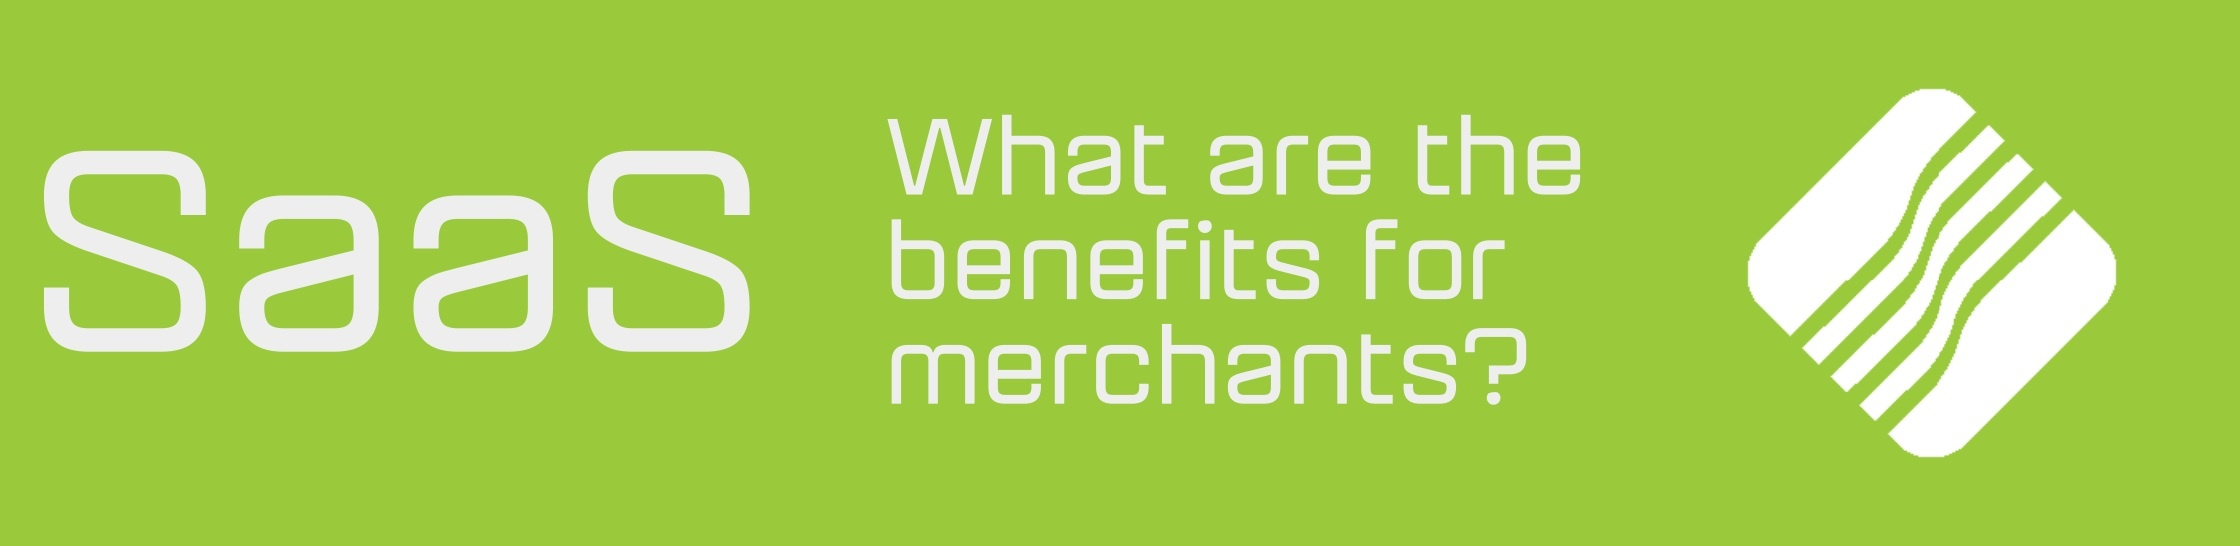 SaaS - What are benefits for merchants?